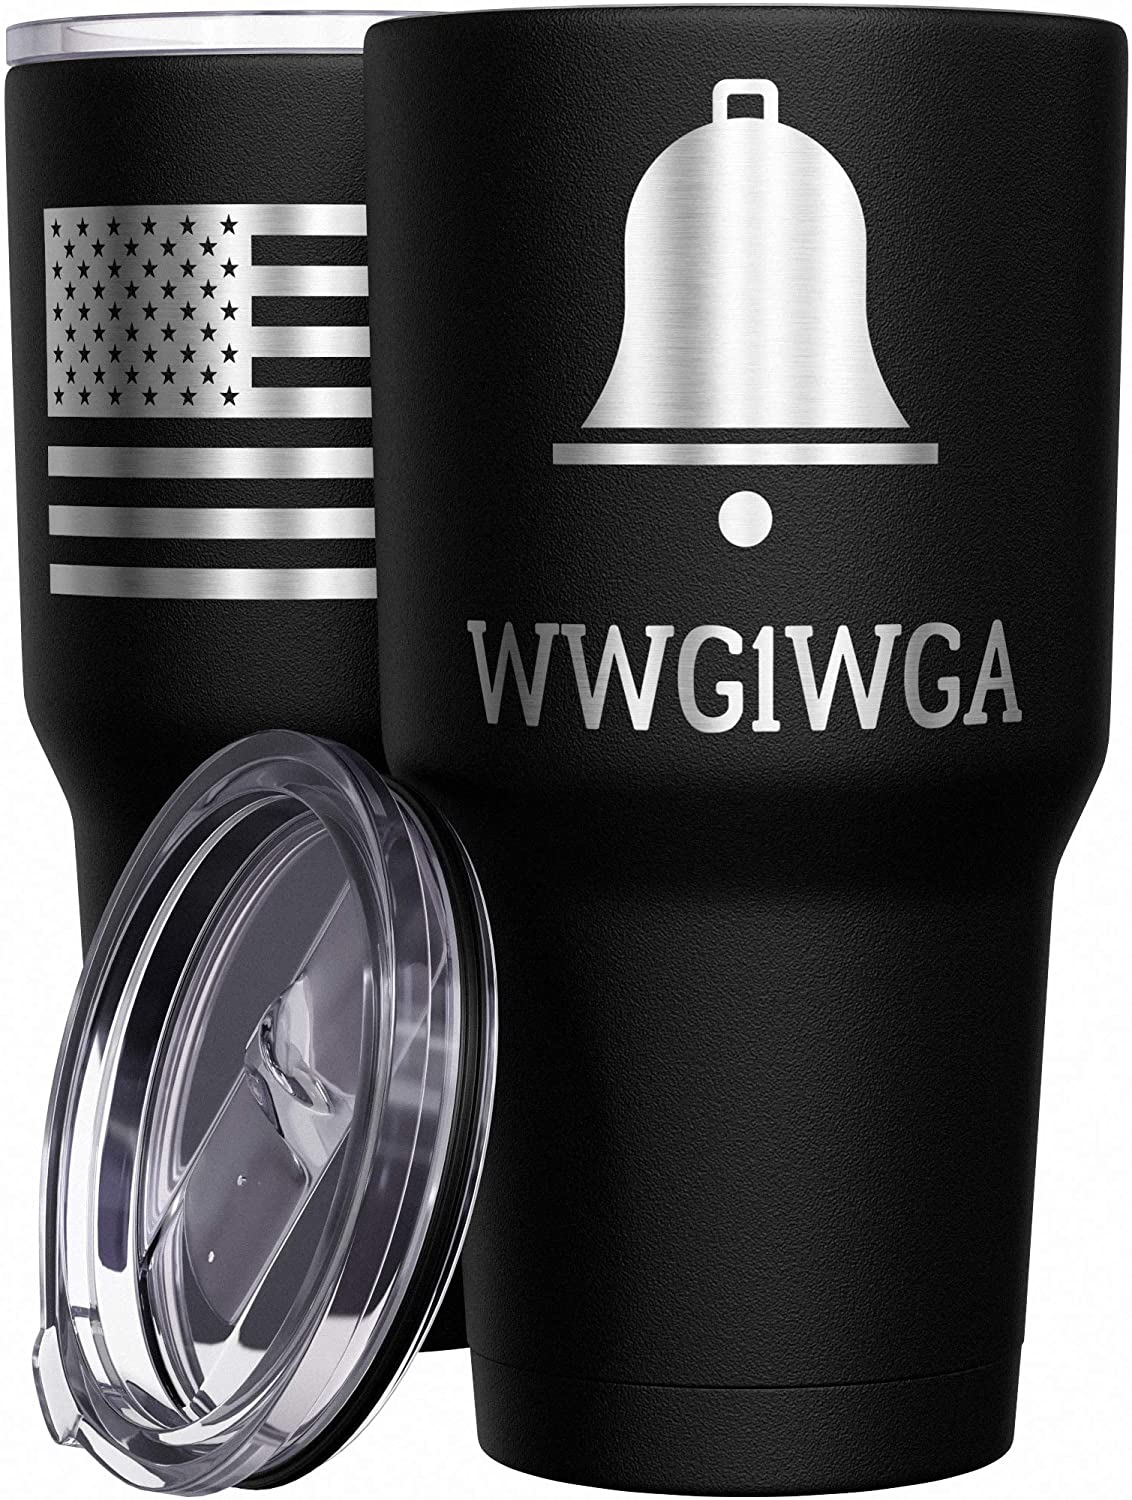 We The People Holsters - WWG1WGA - QAnon Tumbler - American Flag Coffee Travel Mug - Republican Tumbler - Double Insulated Tumbler - 30 oz